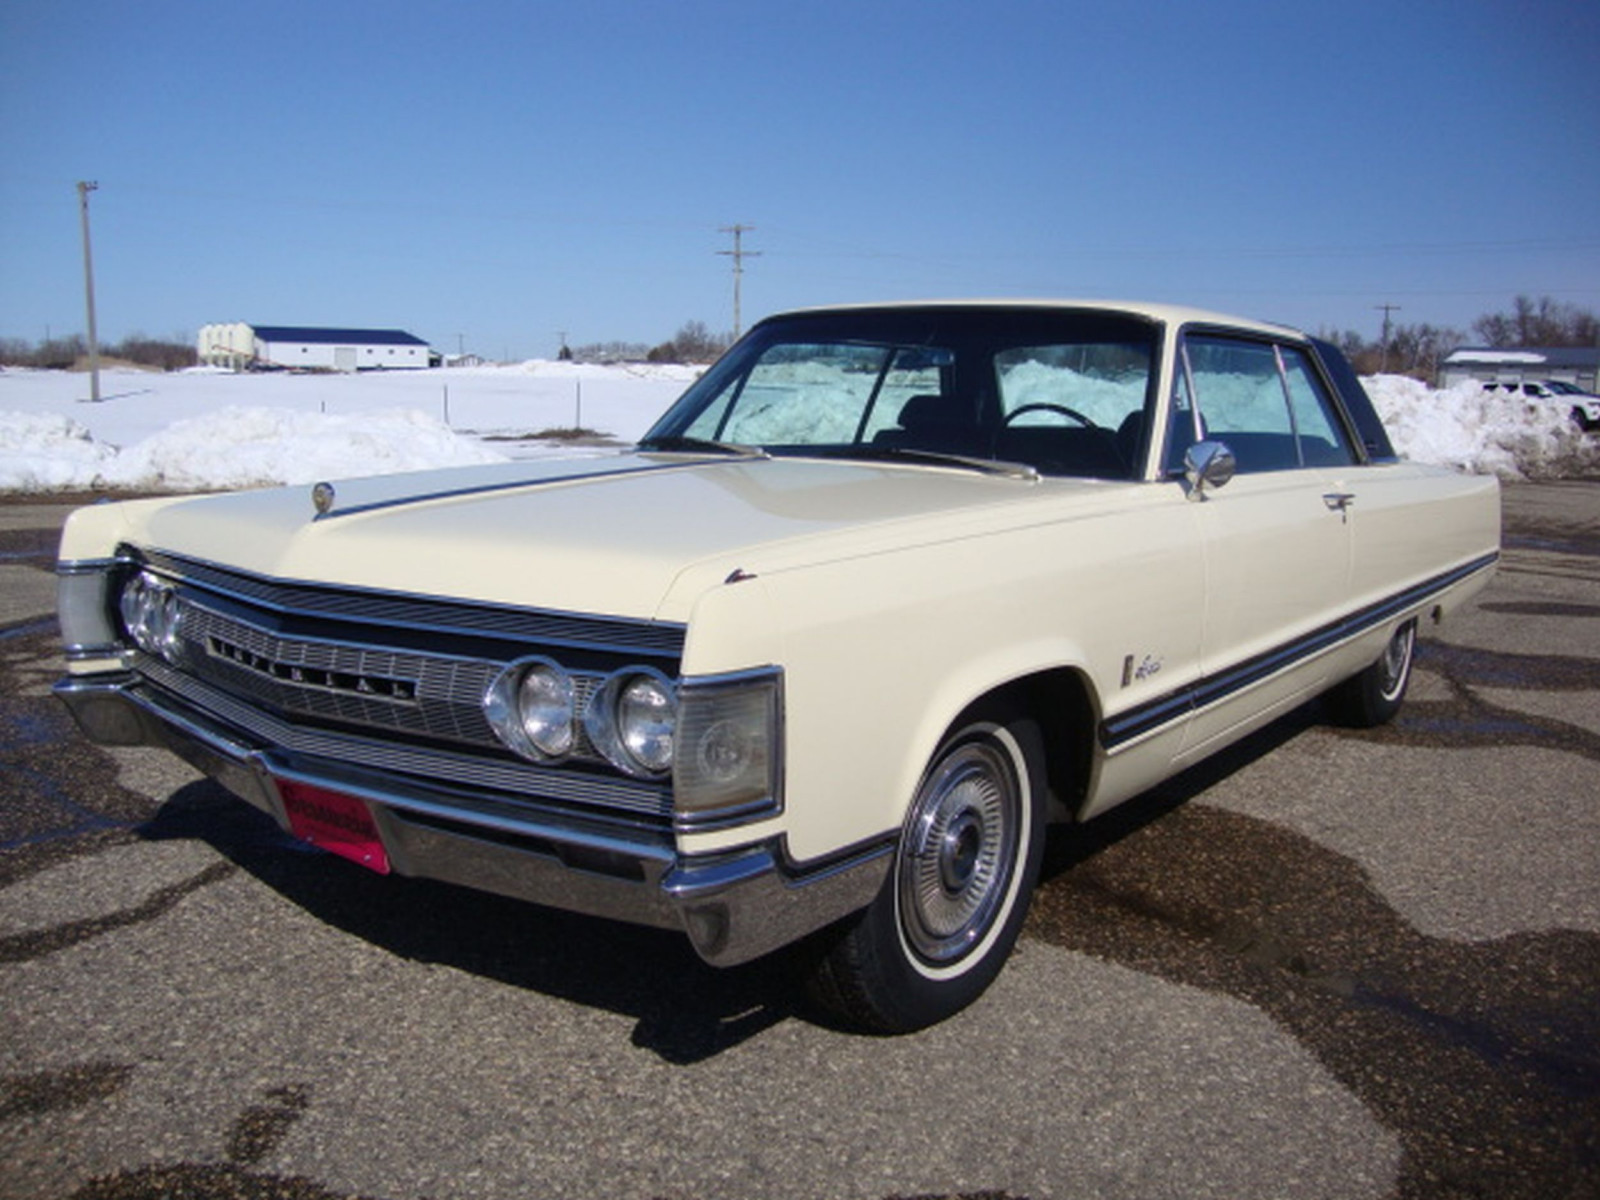 1967 Chrysler Imperial Crown Coupe - Image 1